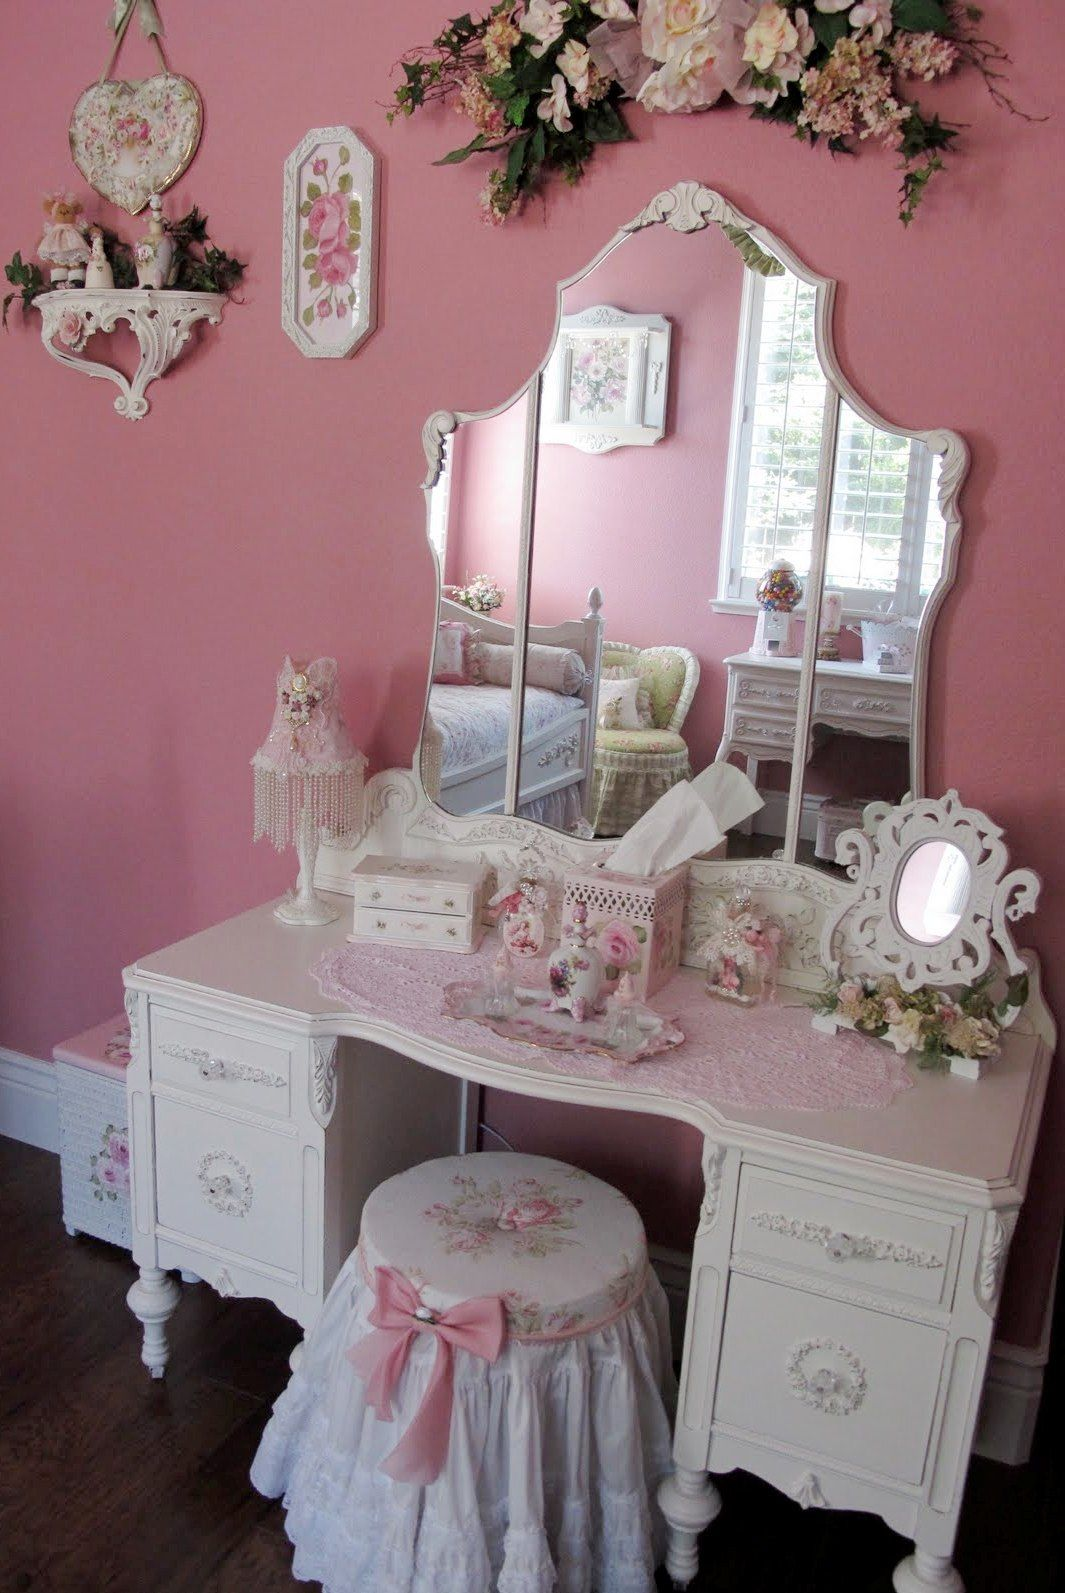 Shabby Chic Bedroom Mirror Love This Dressing Table Reminds Me Of My Dolly Varden When I